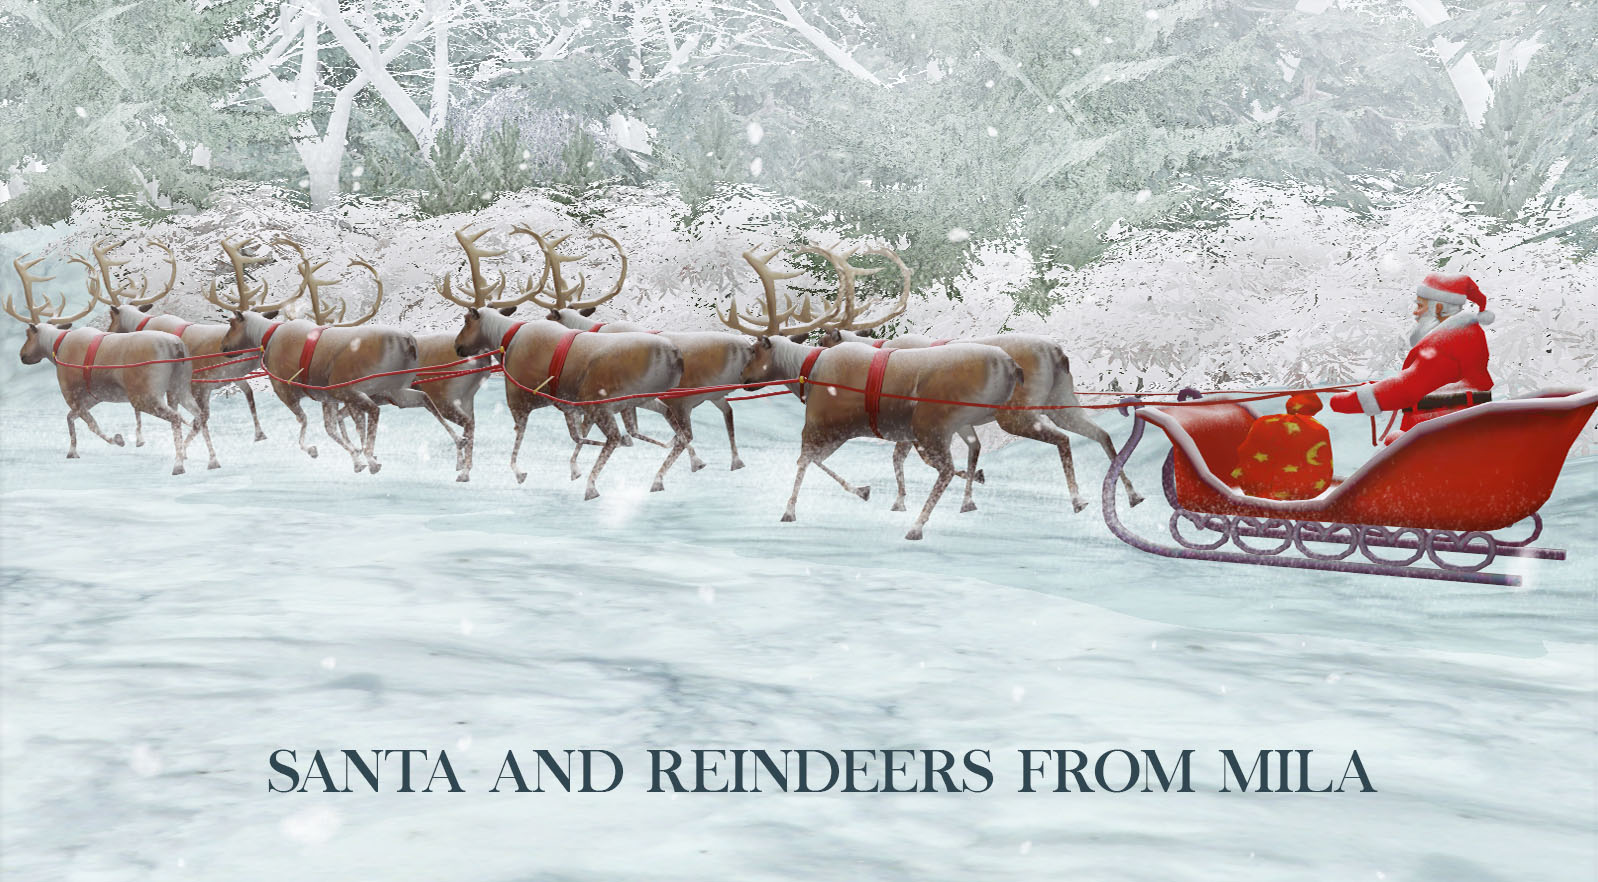 Santa and Reindeers by Leo Sims